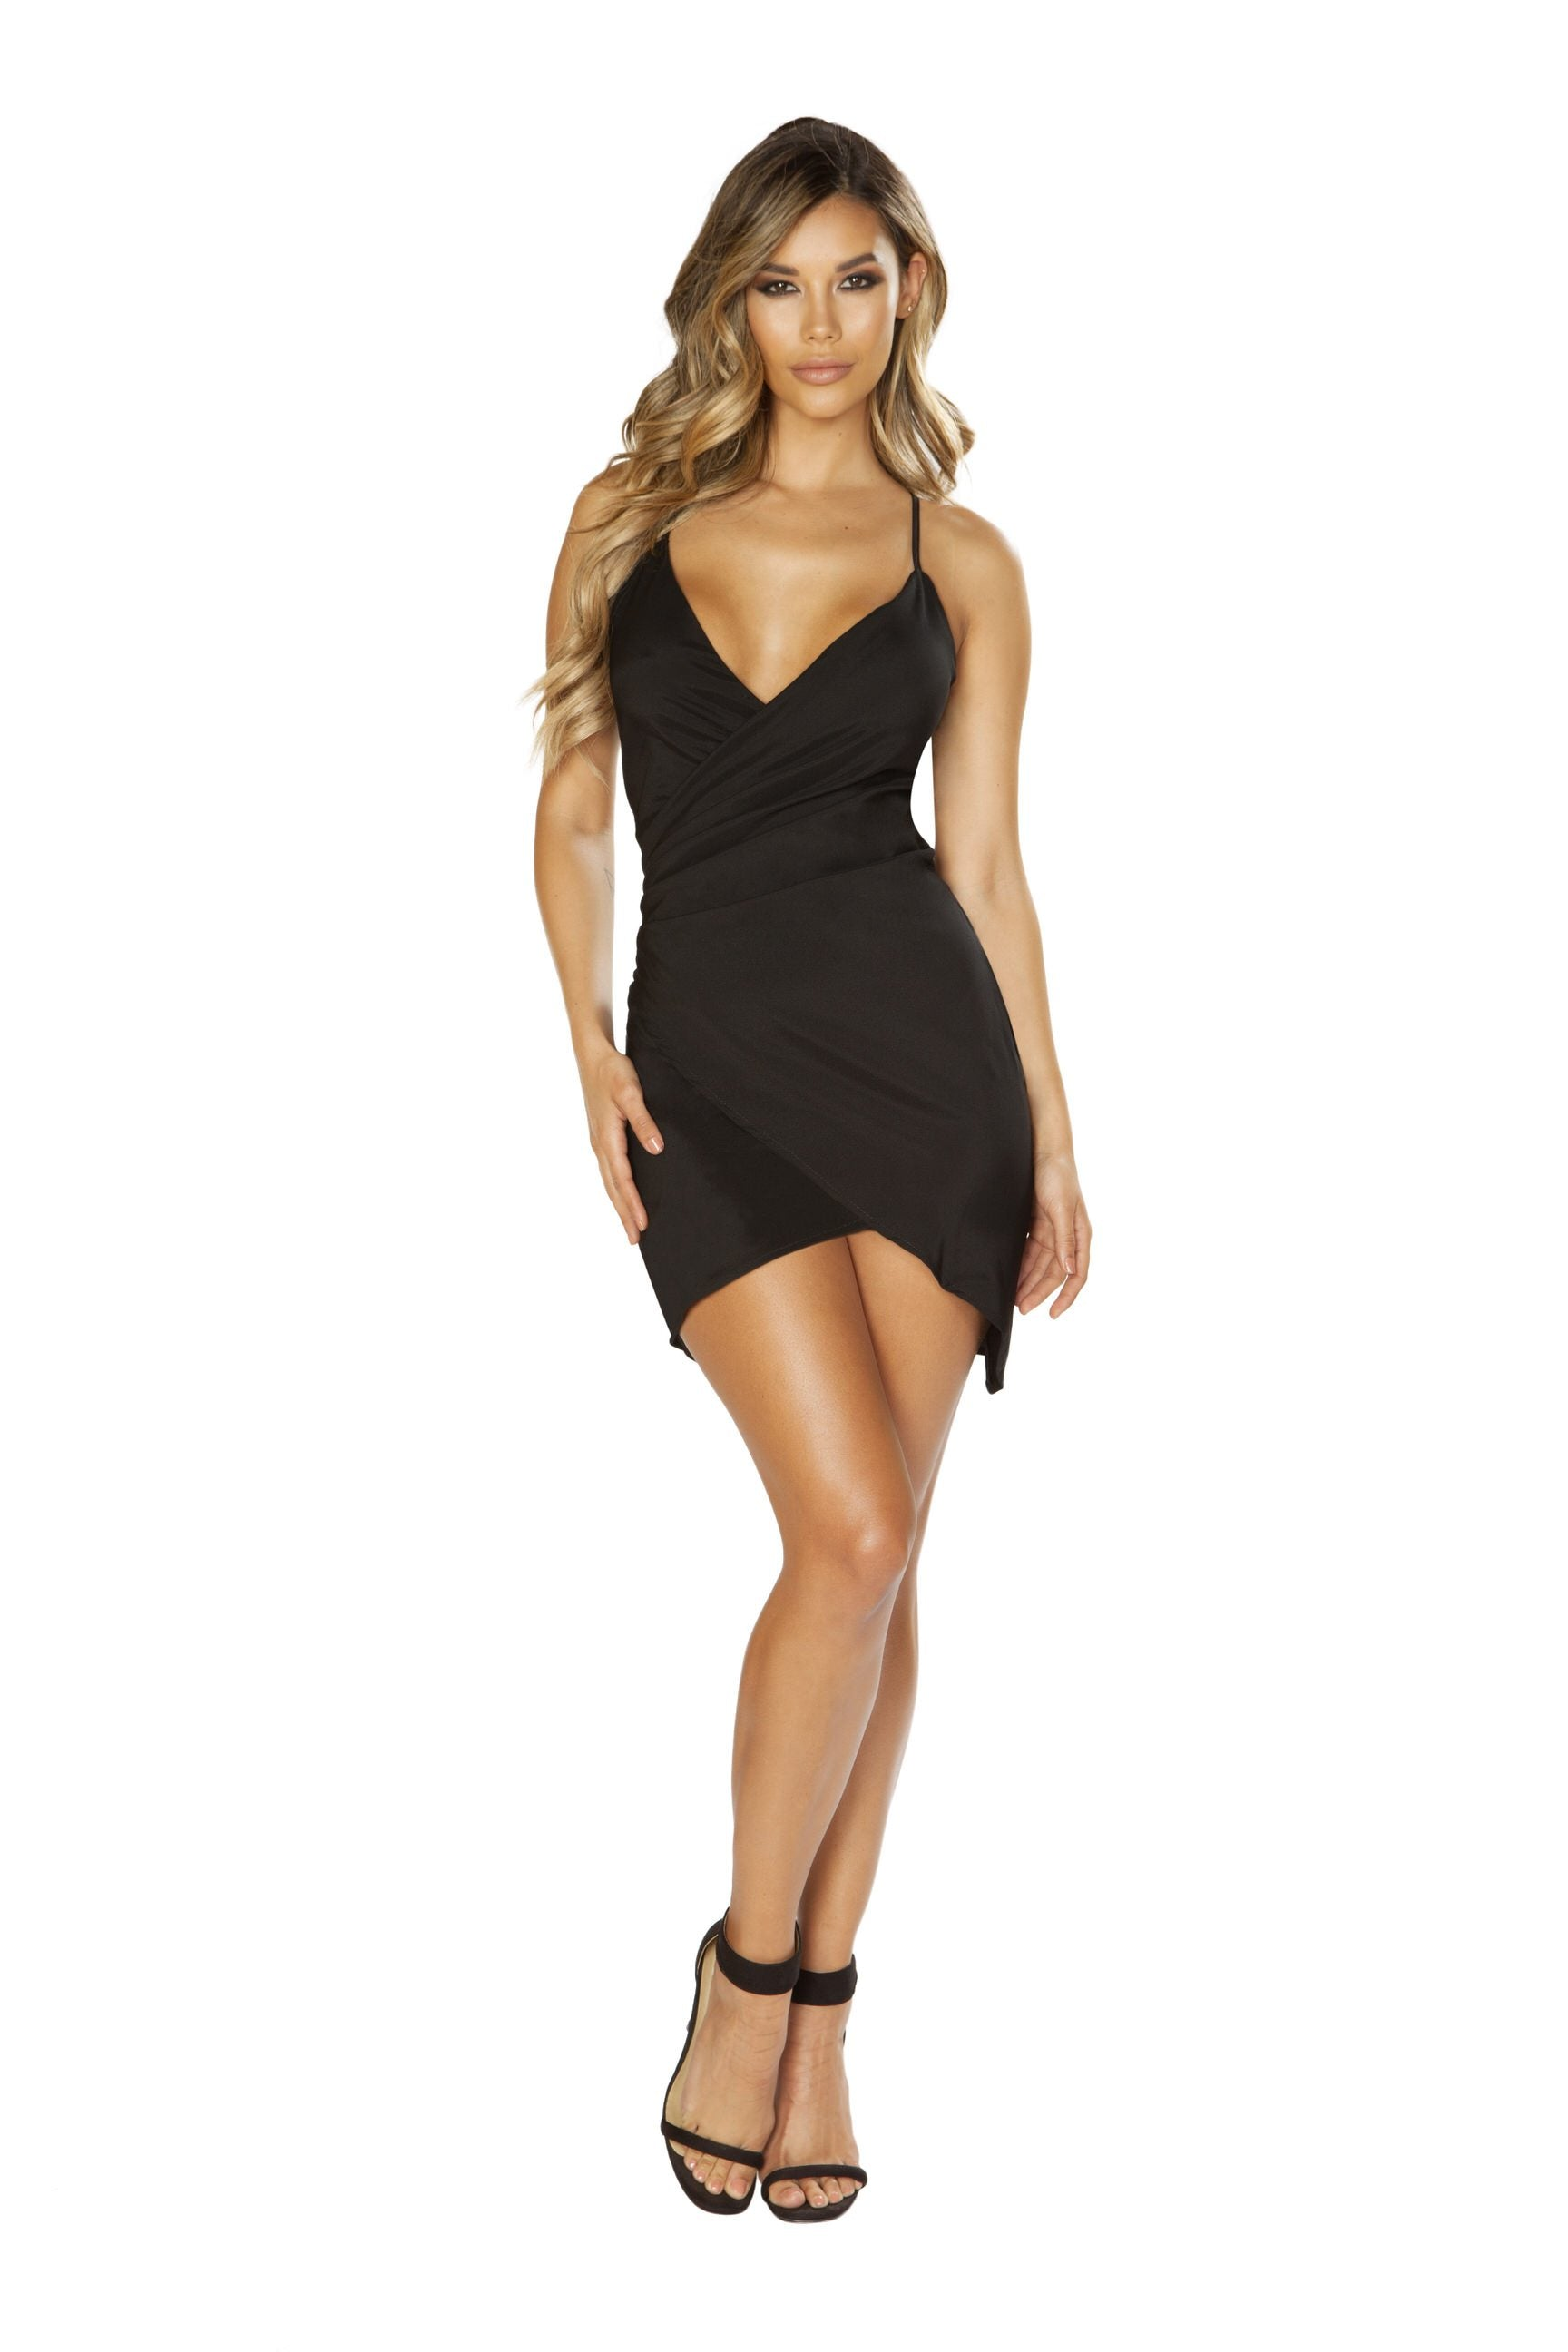 Buy Spaghetti Strap Satin Dress with Overlapping Scrunch Detail from Rave Fix for $29.25 with Same Day Shipping Designed by Roma Costume 3644-Blk-S